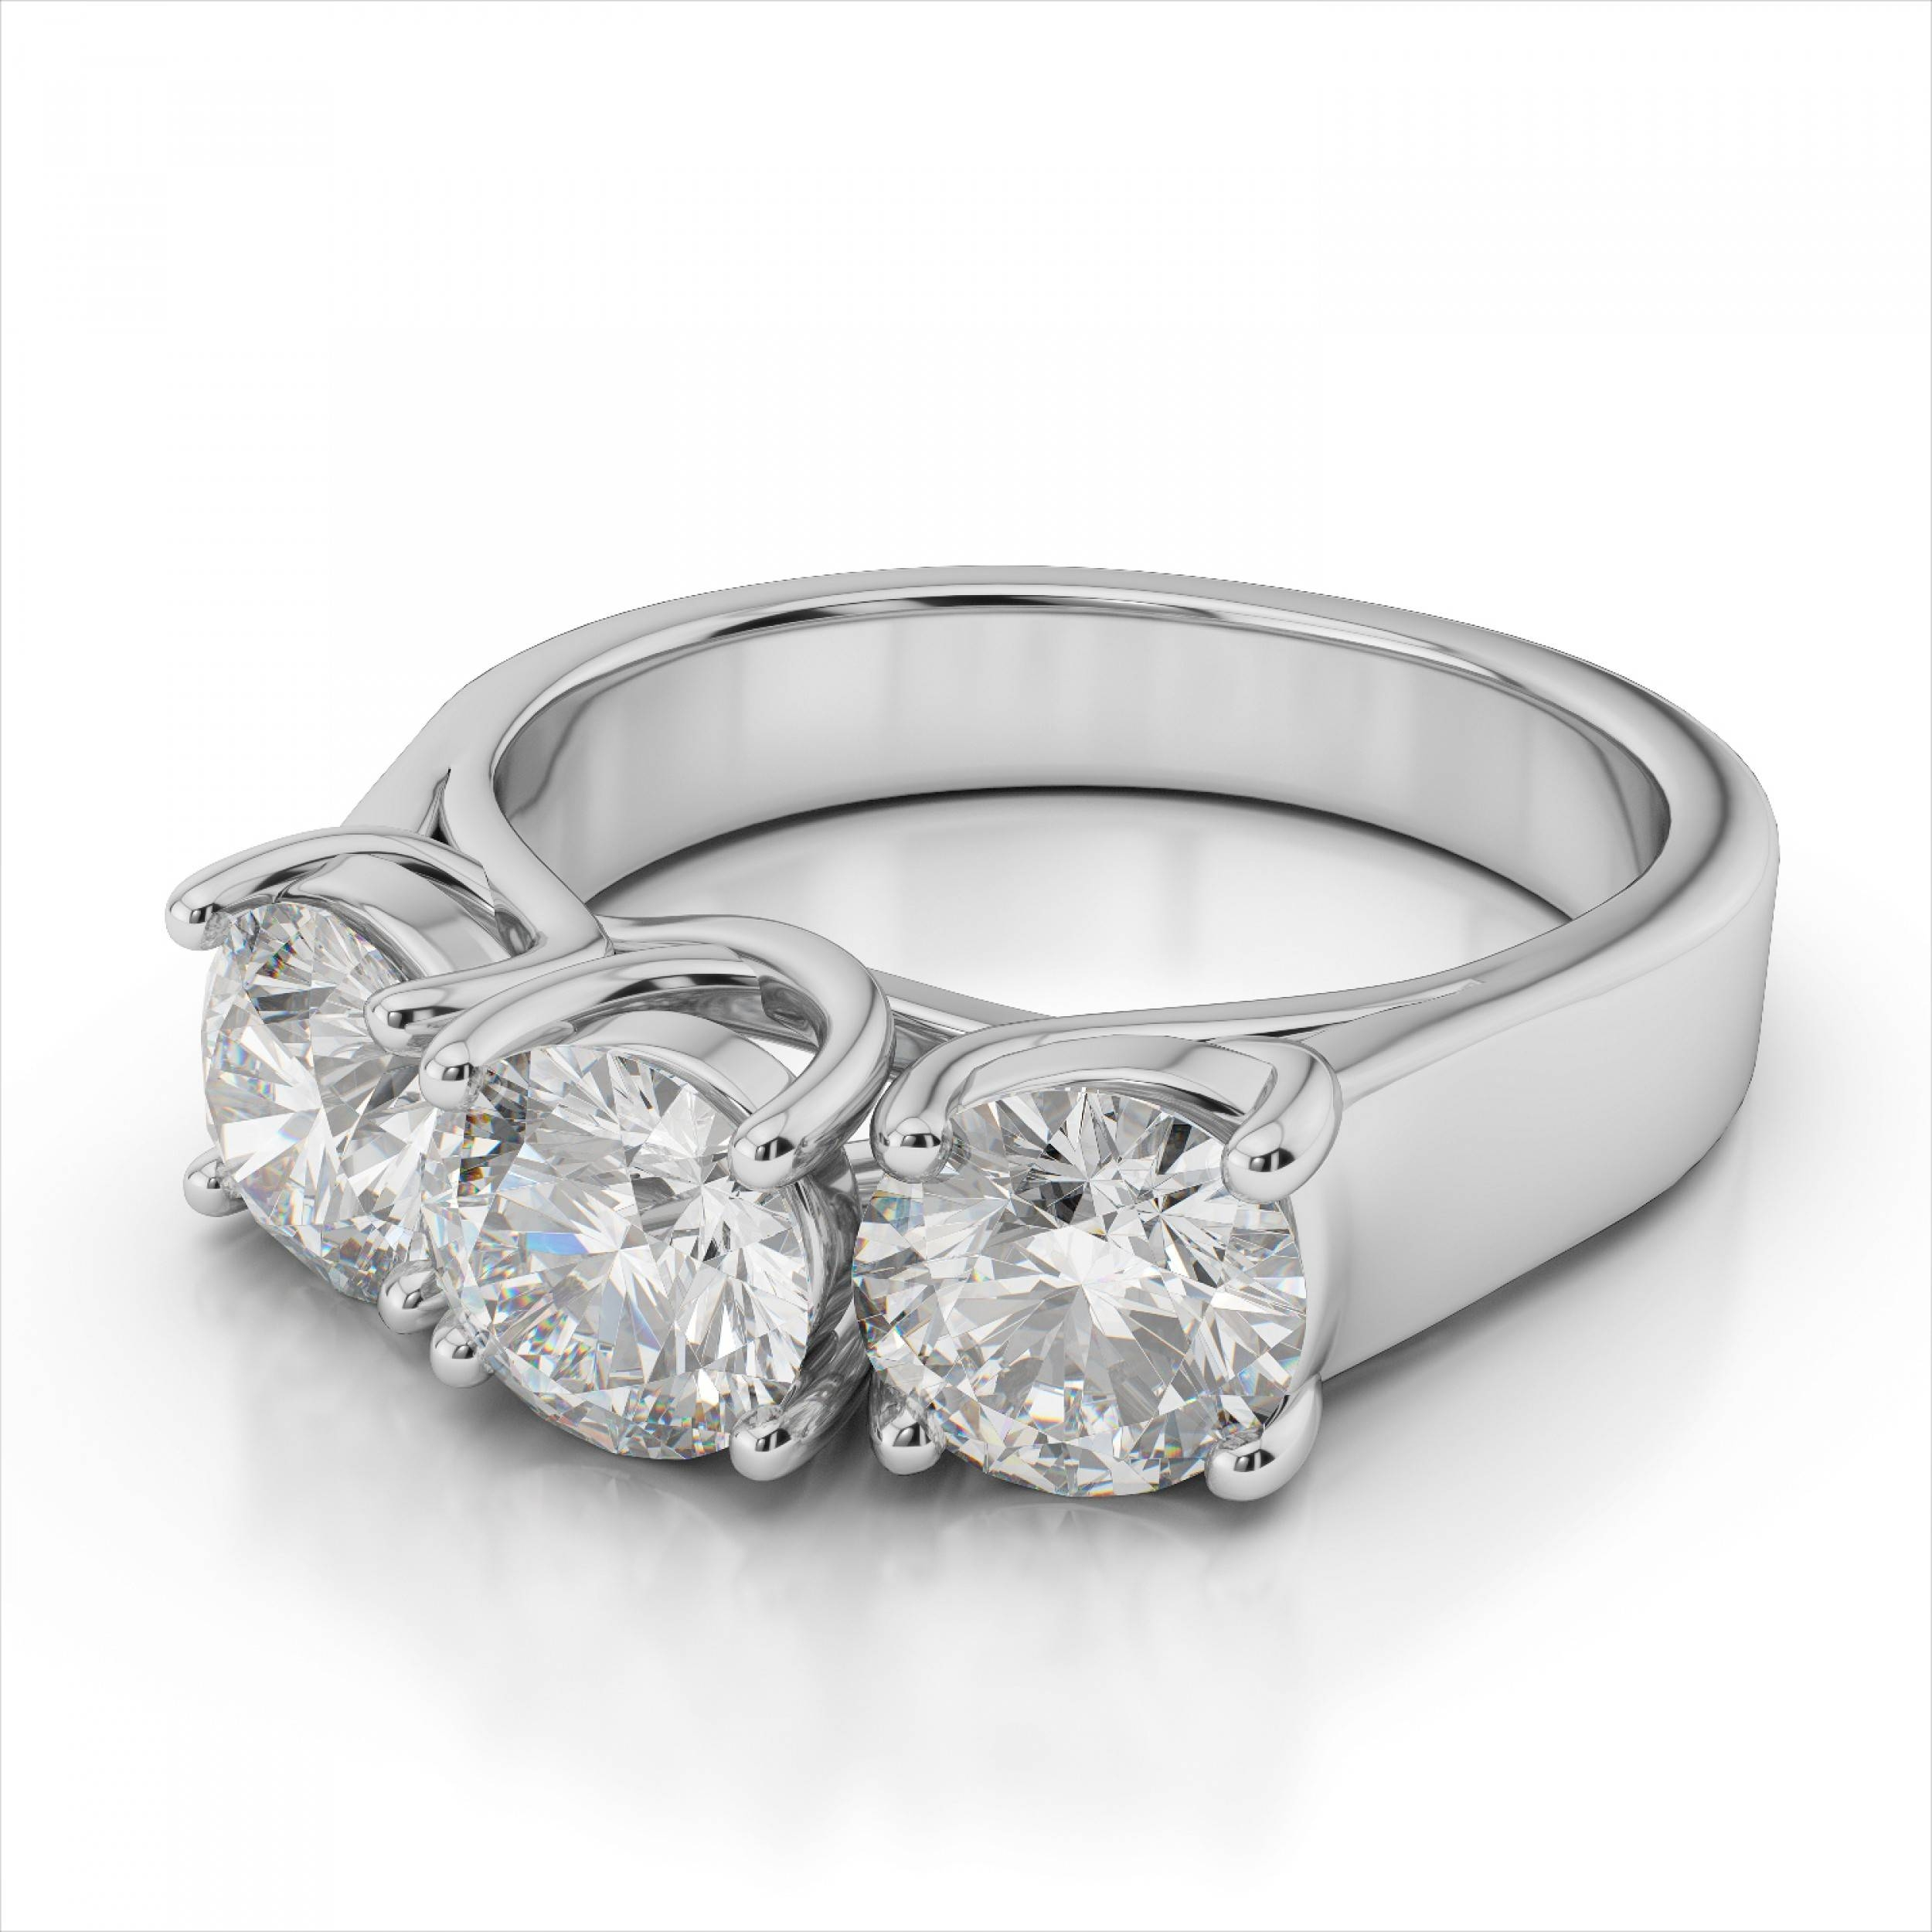 Three Stone Anniversary Diamond Rings | Wedding, Promise, Diamond With Regard To Most Current 3 Stone Diamond Anniversary Rings (View 19 of 25)